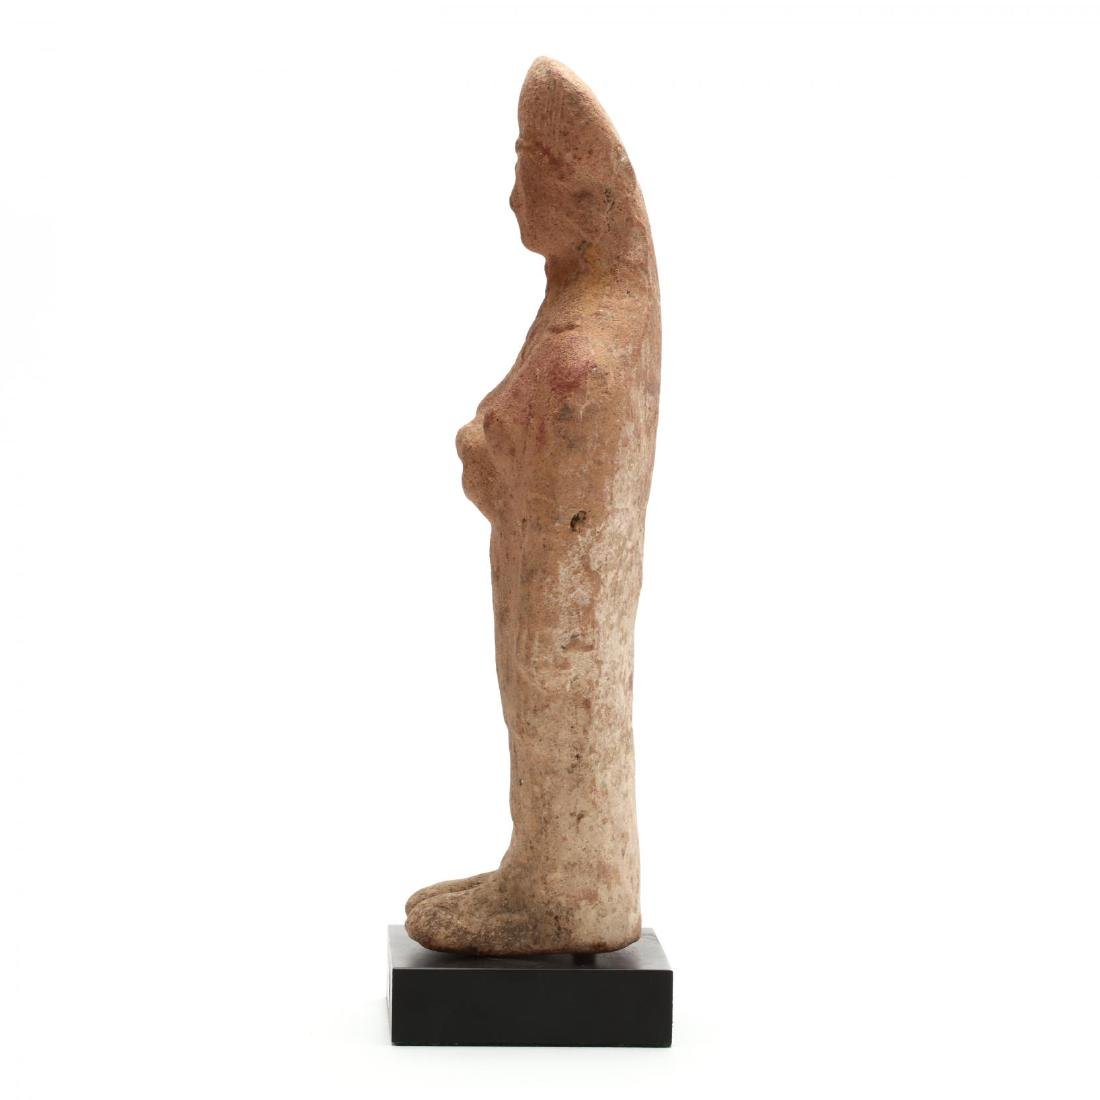 Cypriot Terracotta Statuette of a Female Votary - 4